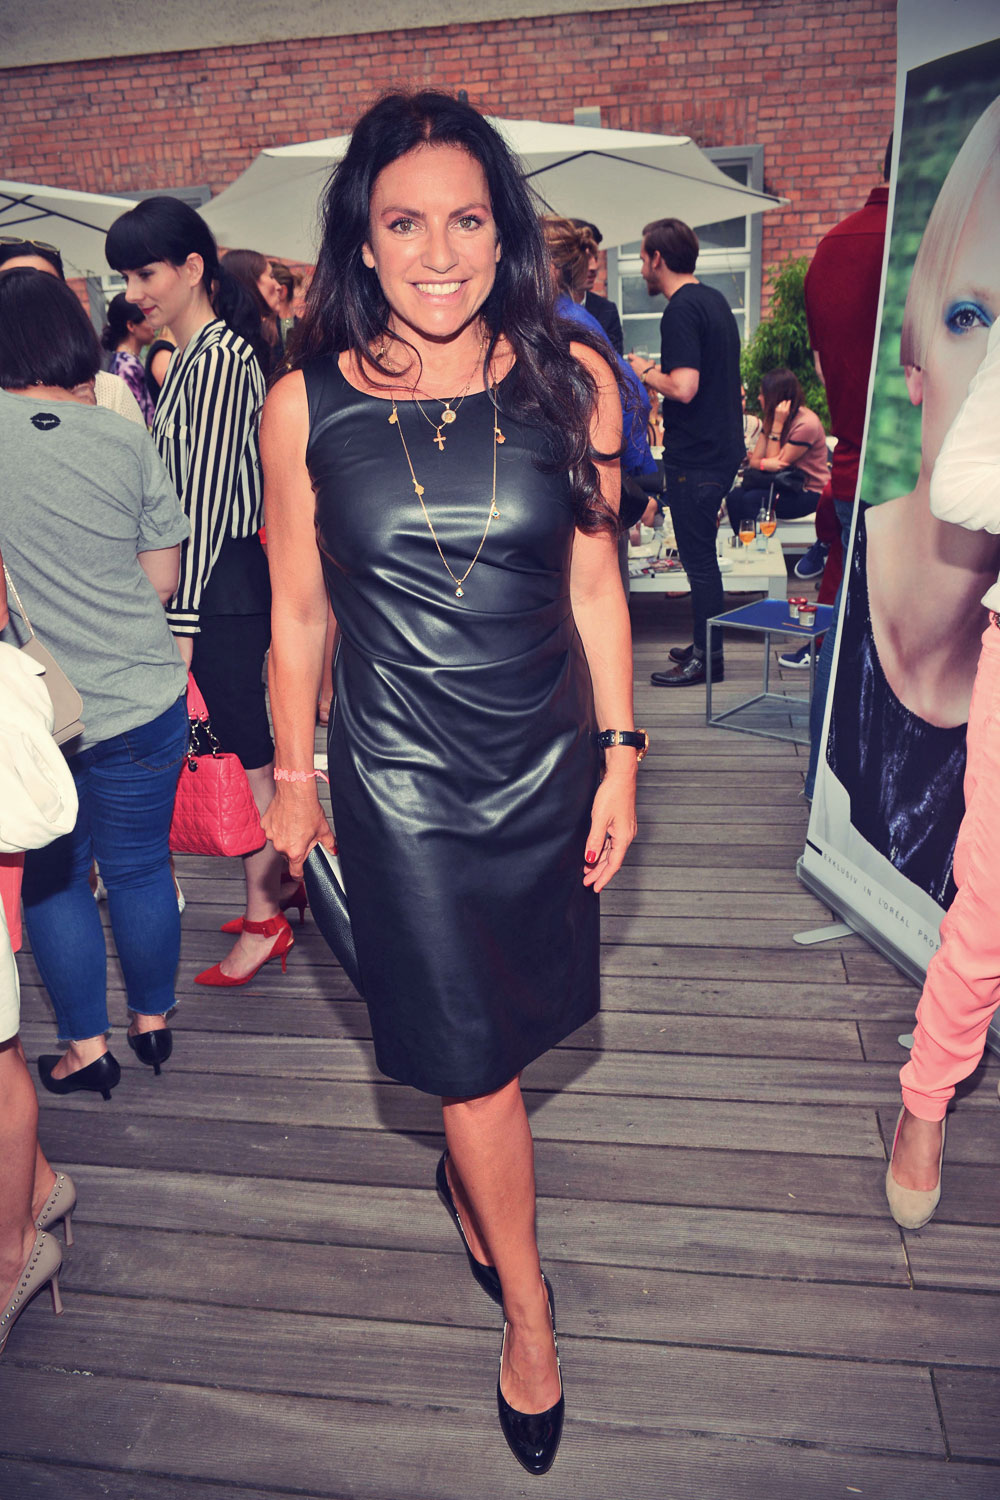 Christine Neubauer attends the Gala Fashion Brunch